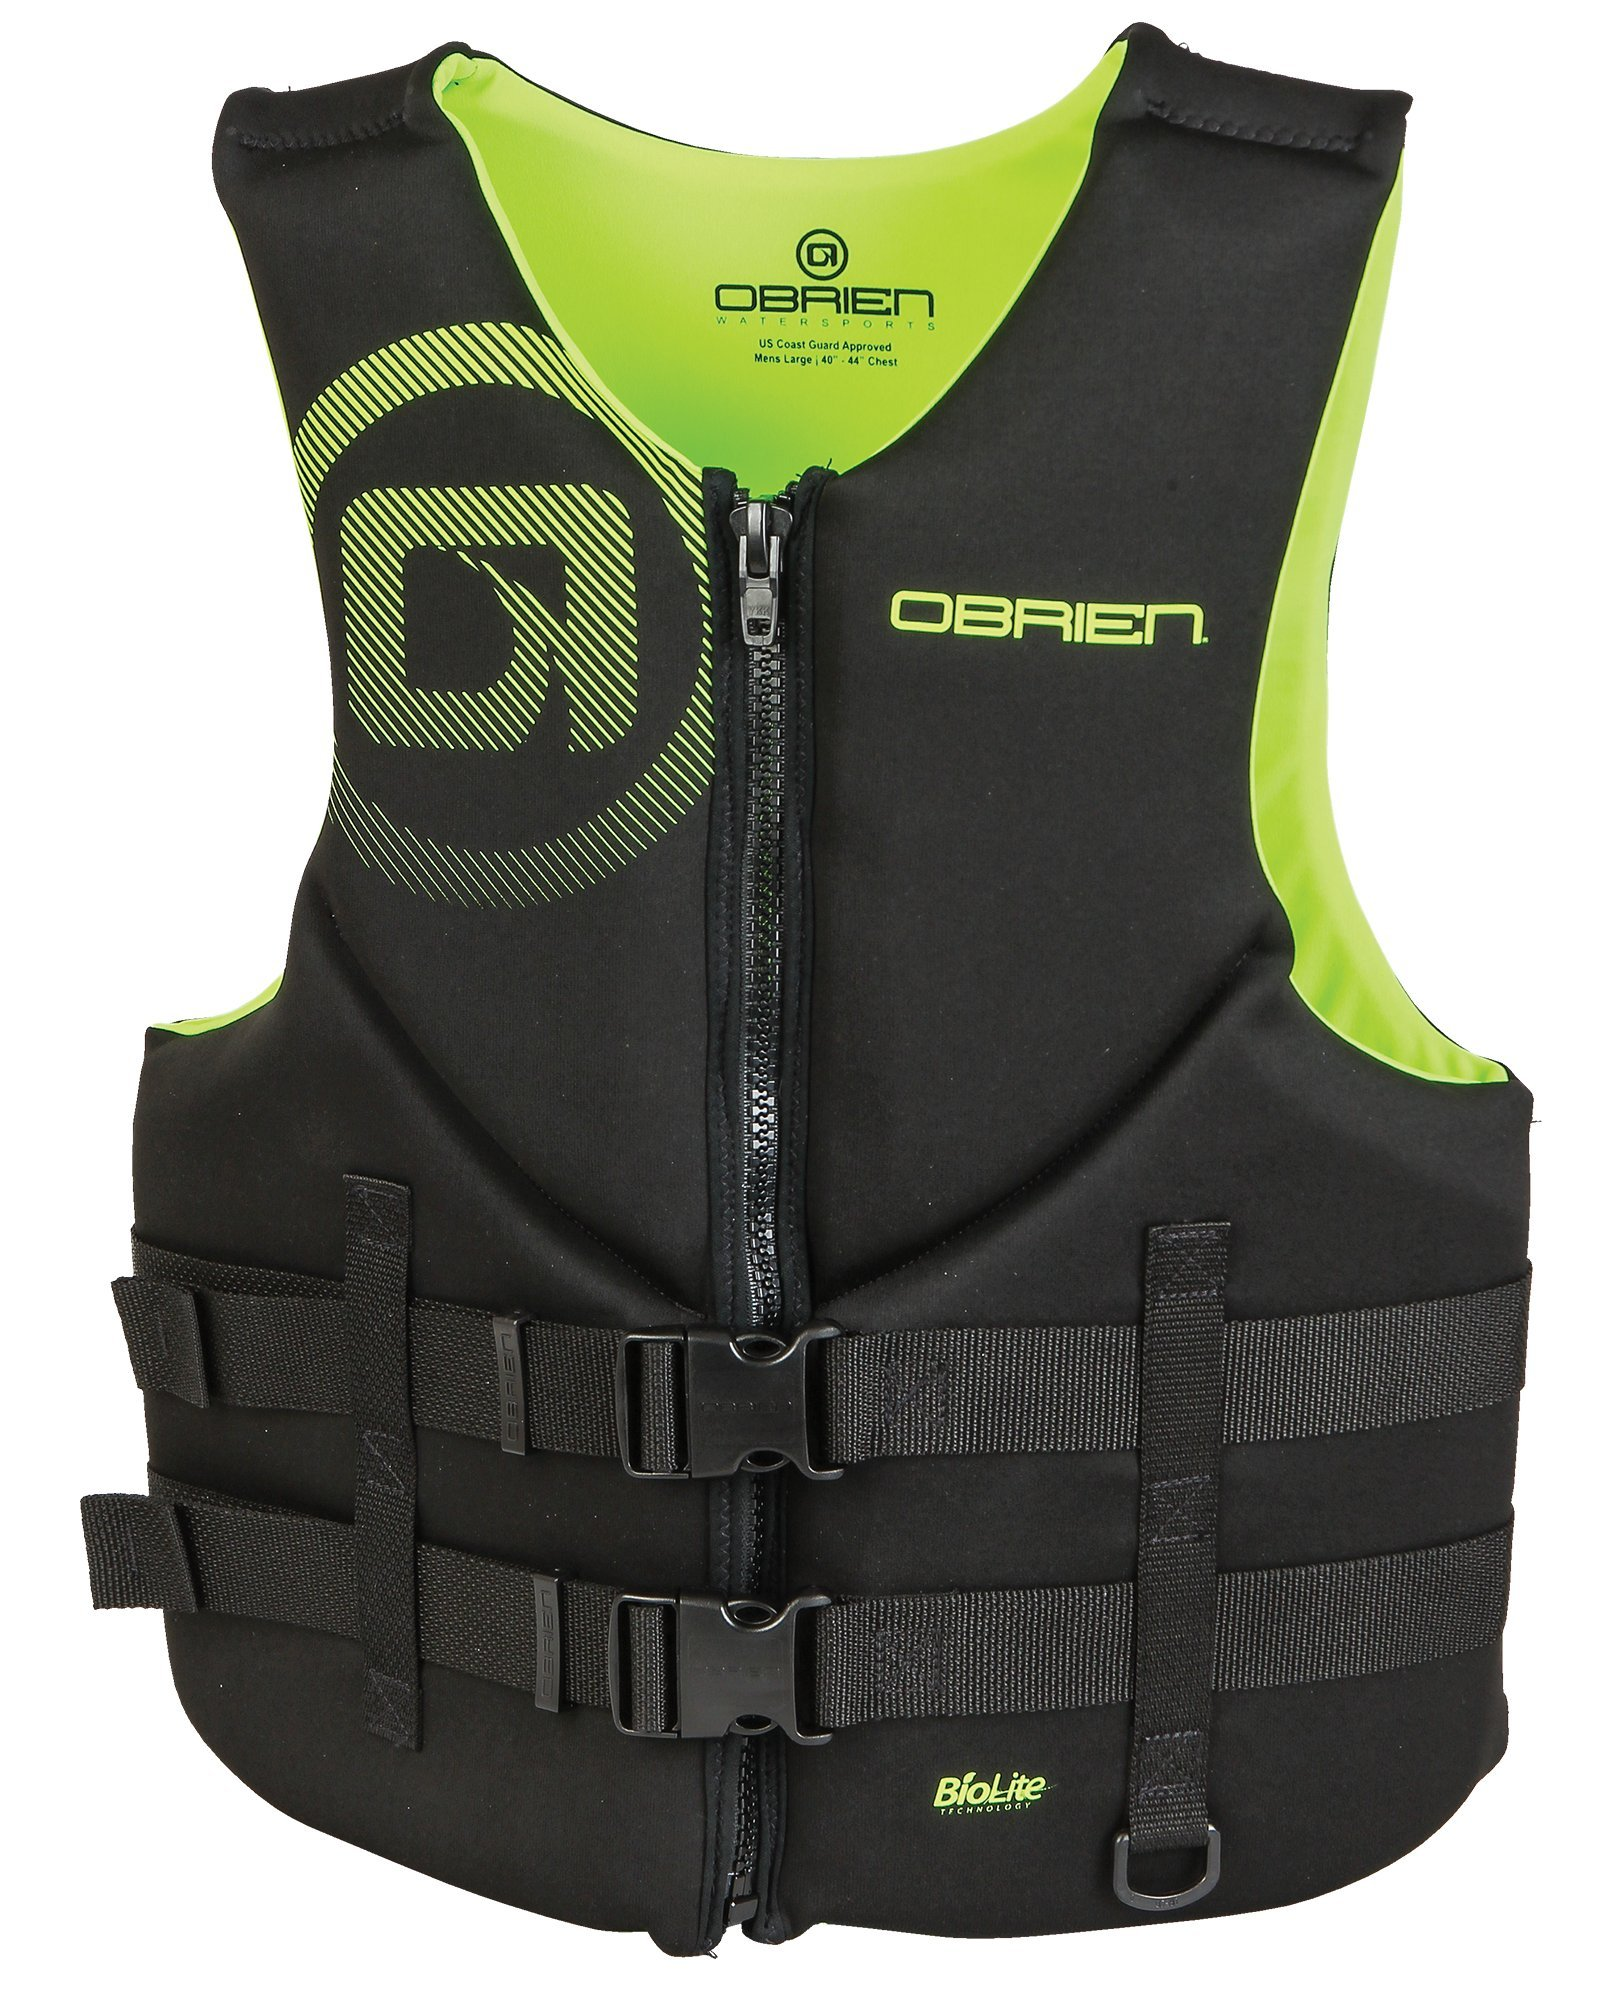 O'Brien Men's Traditional Neoprene Life Jacket, Green, X-Small by O'Brien